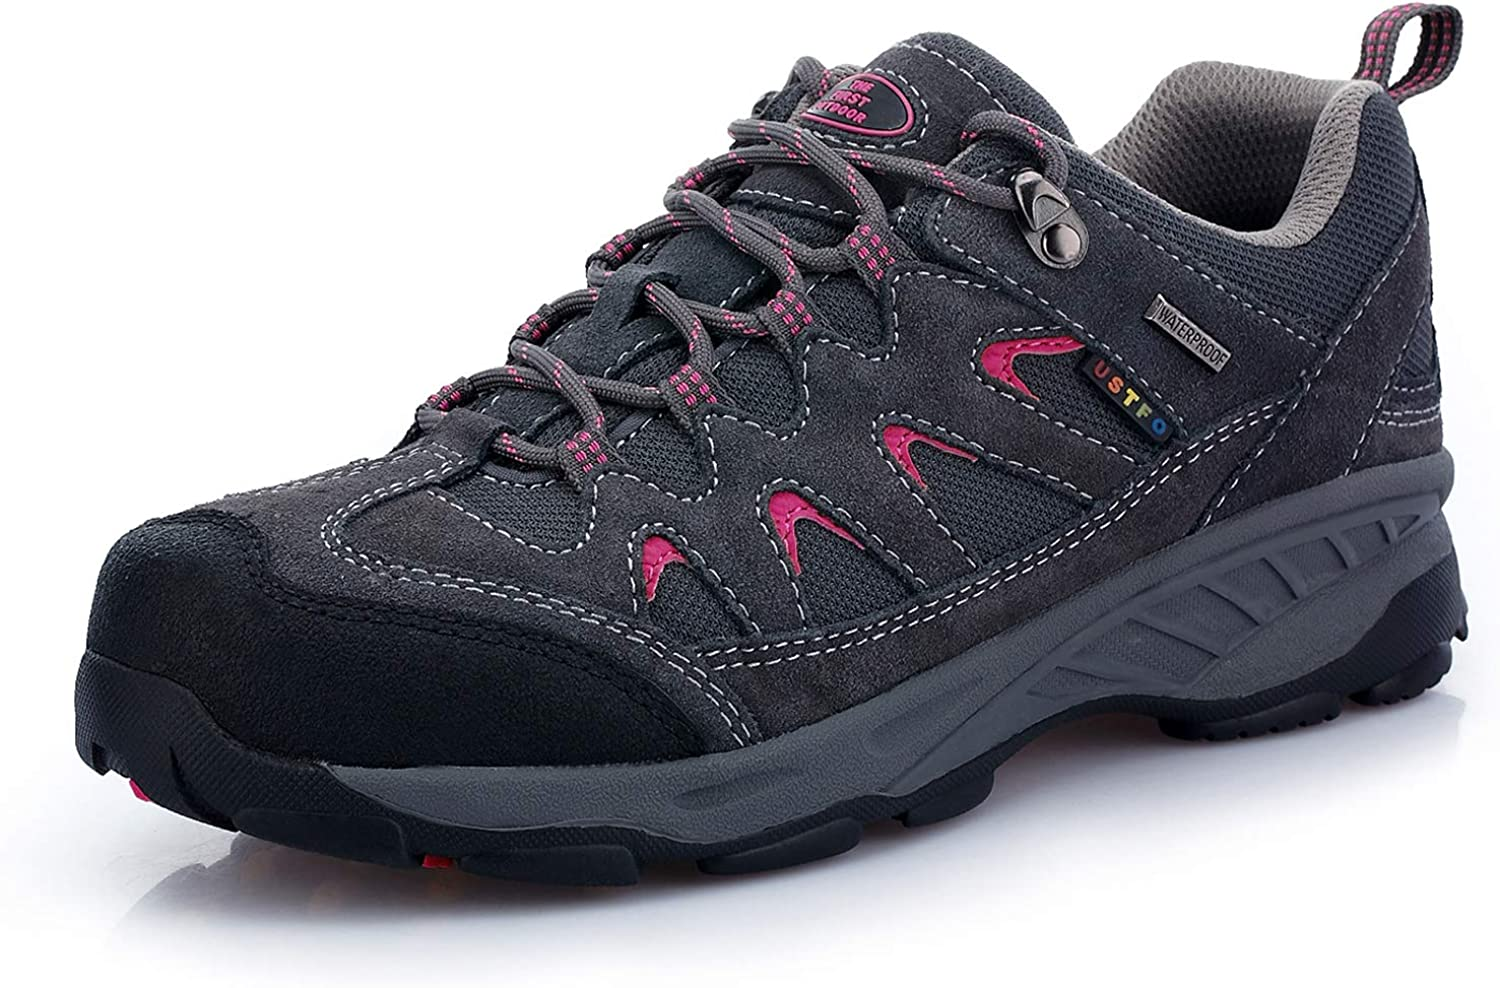 TFO Womens Waterproof Hiking Shoes Lightweight Breathable Running Trainers Low Rise Trekking Walking Boots